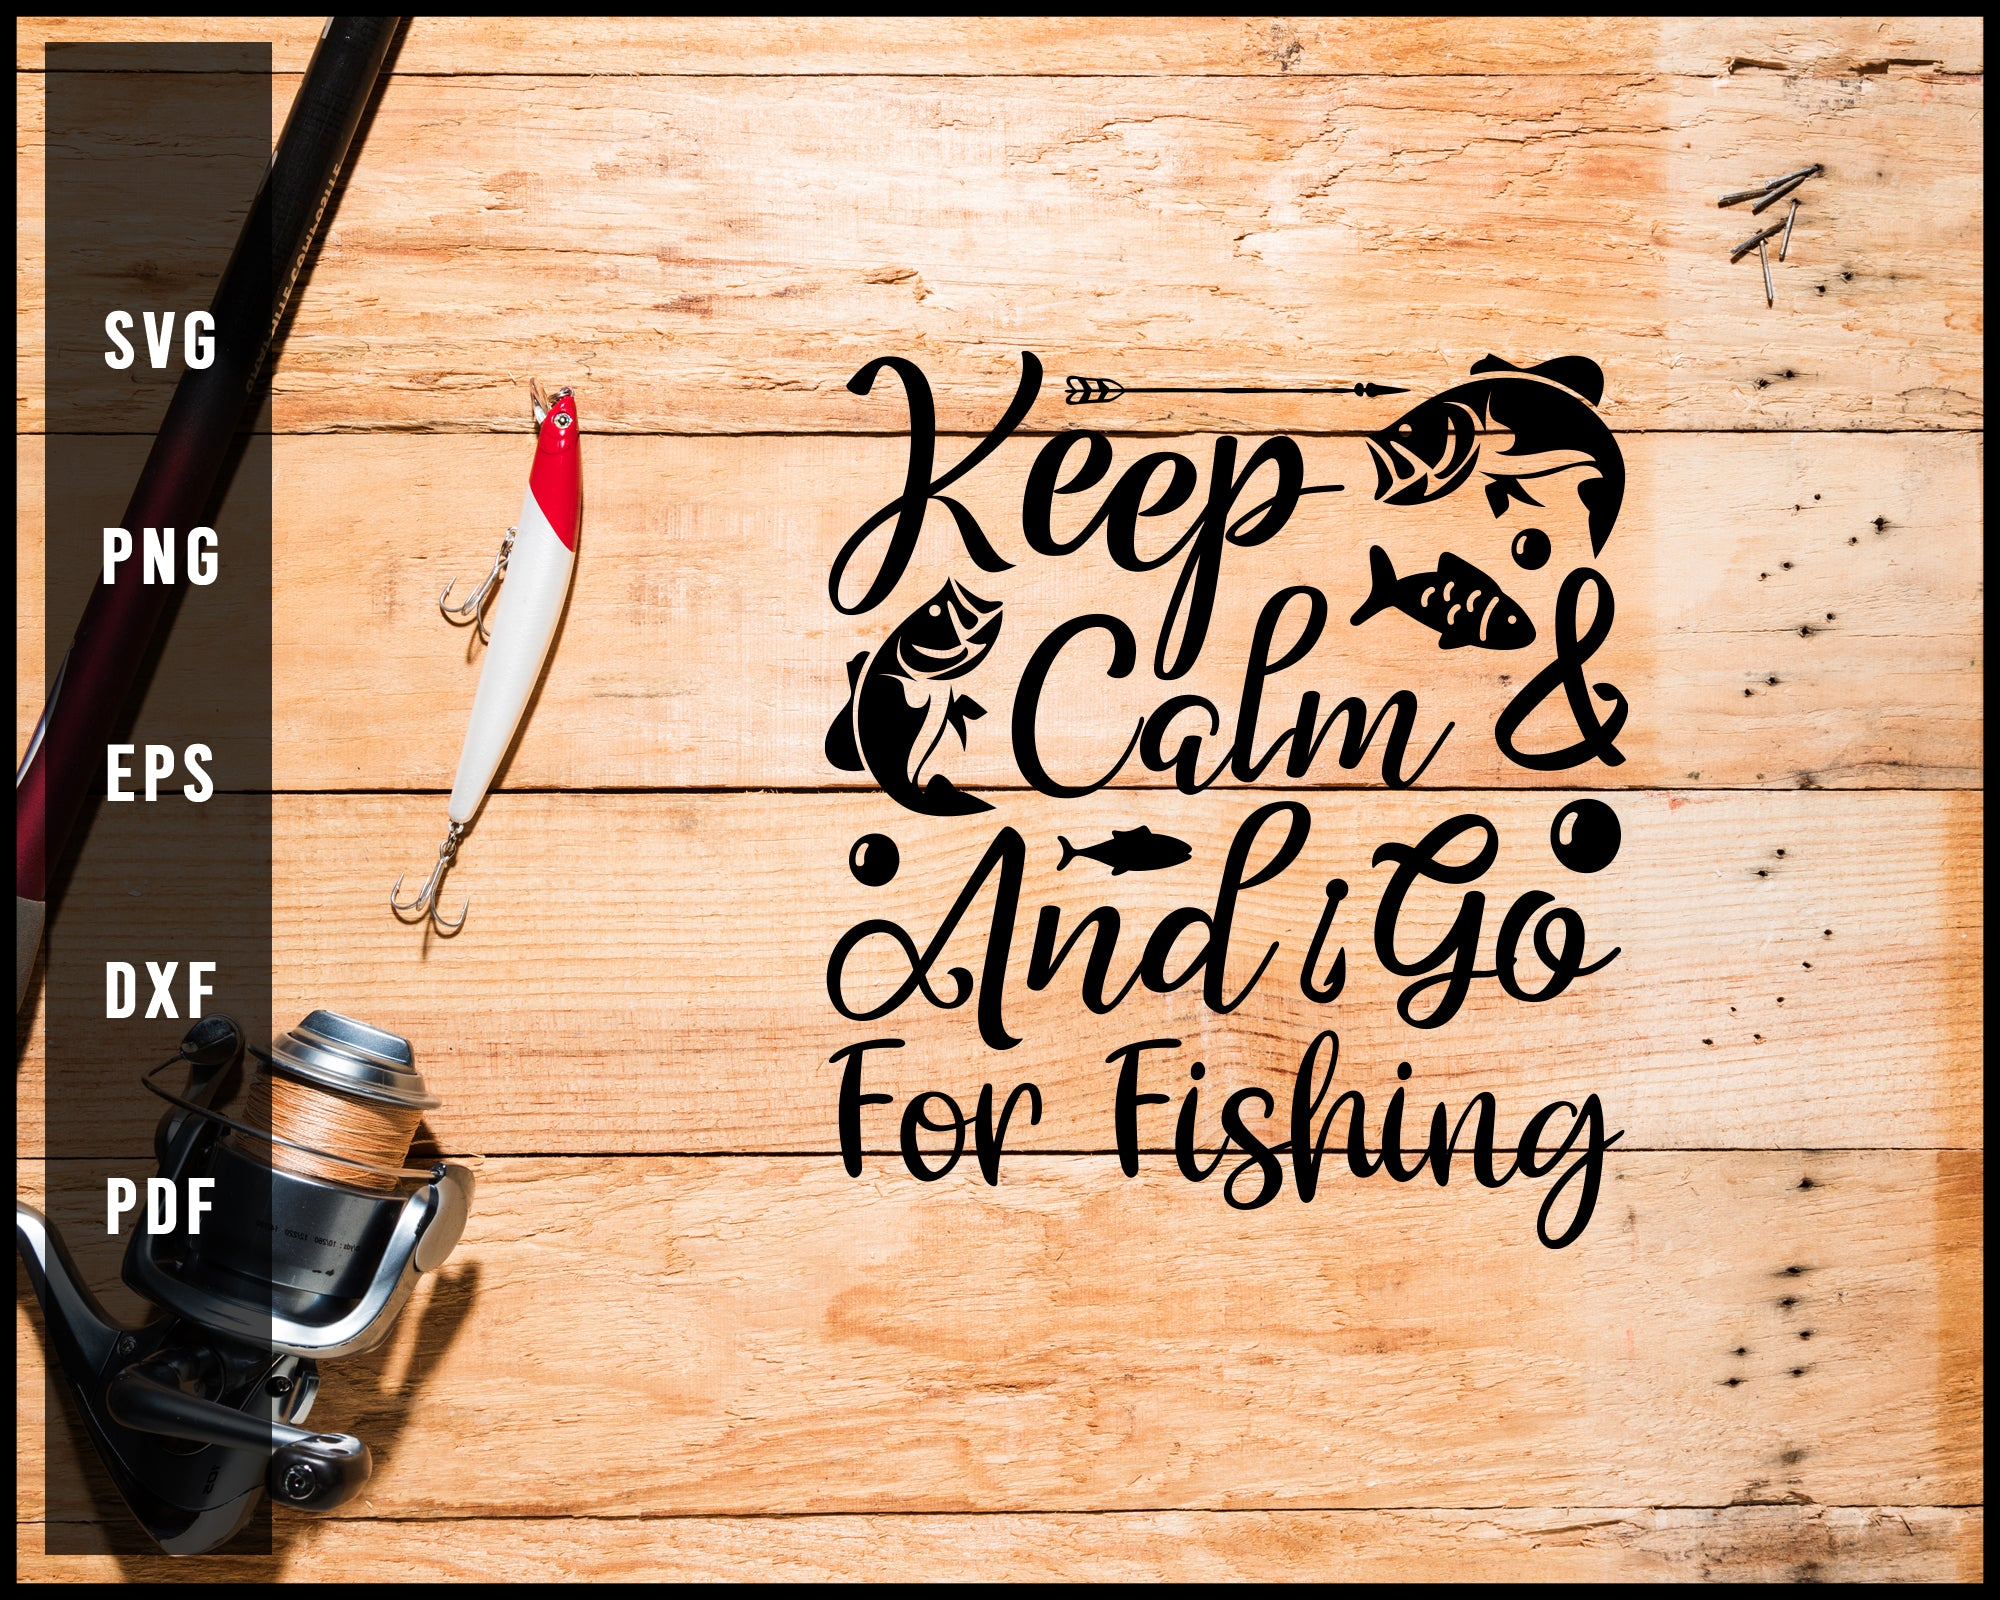 Keep Calm And Go Fishing svg png Silhouette Designs For Cricut And Printable Files